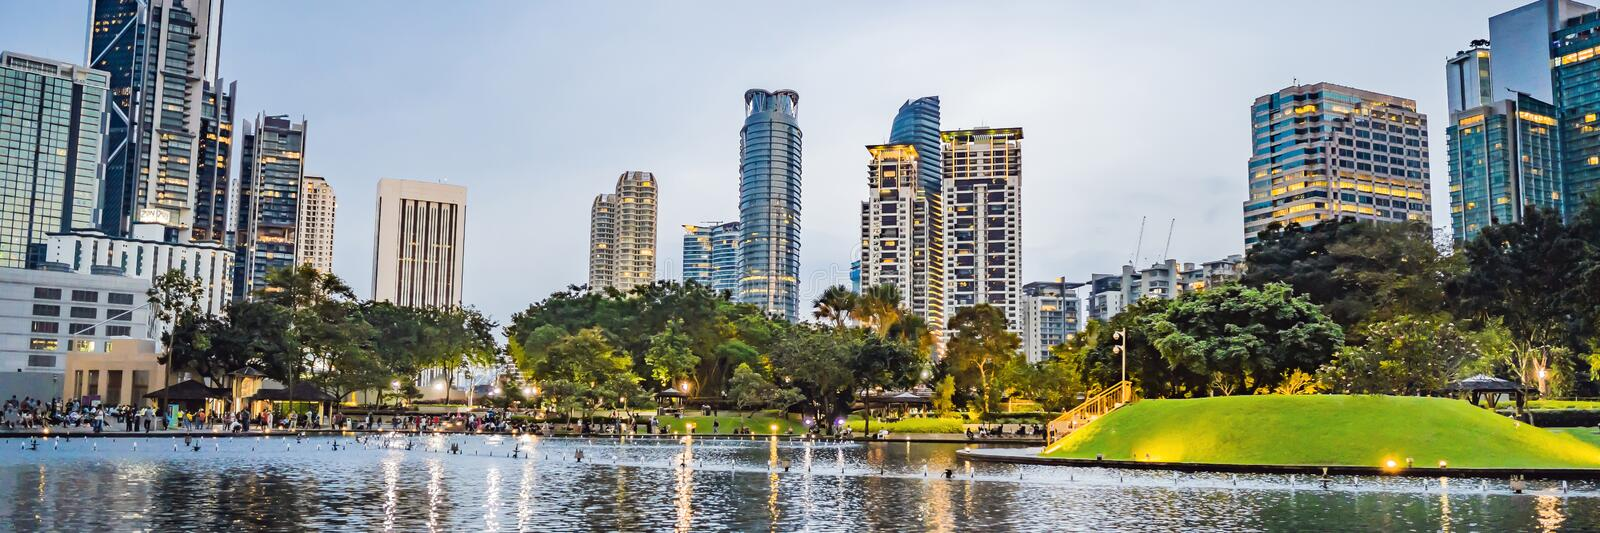 Lake in the evening, near by Twin Towers with city on background. Kuala Lumpur, Malaysia BANNER, LONG FORMAT stock photos